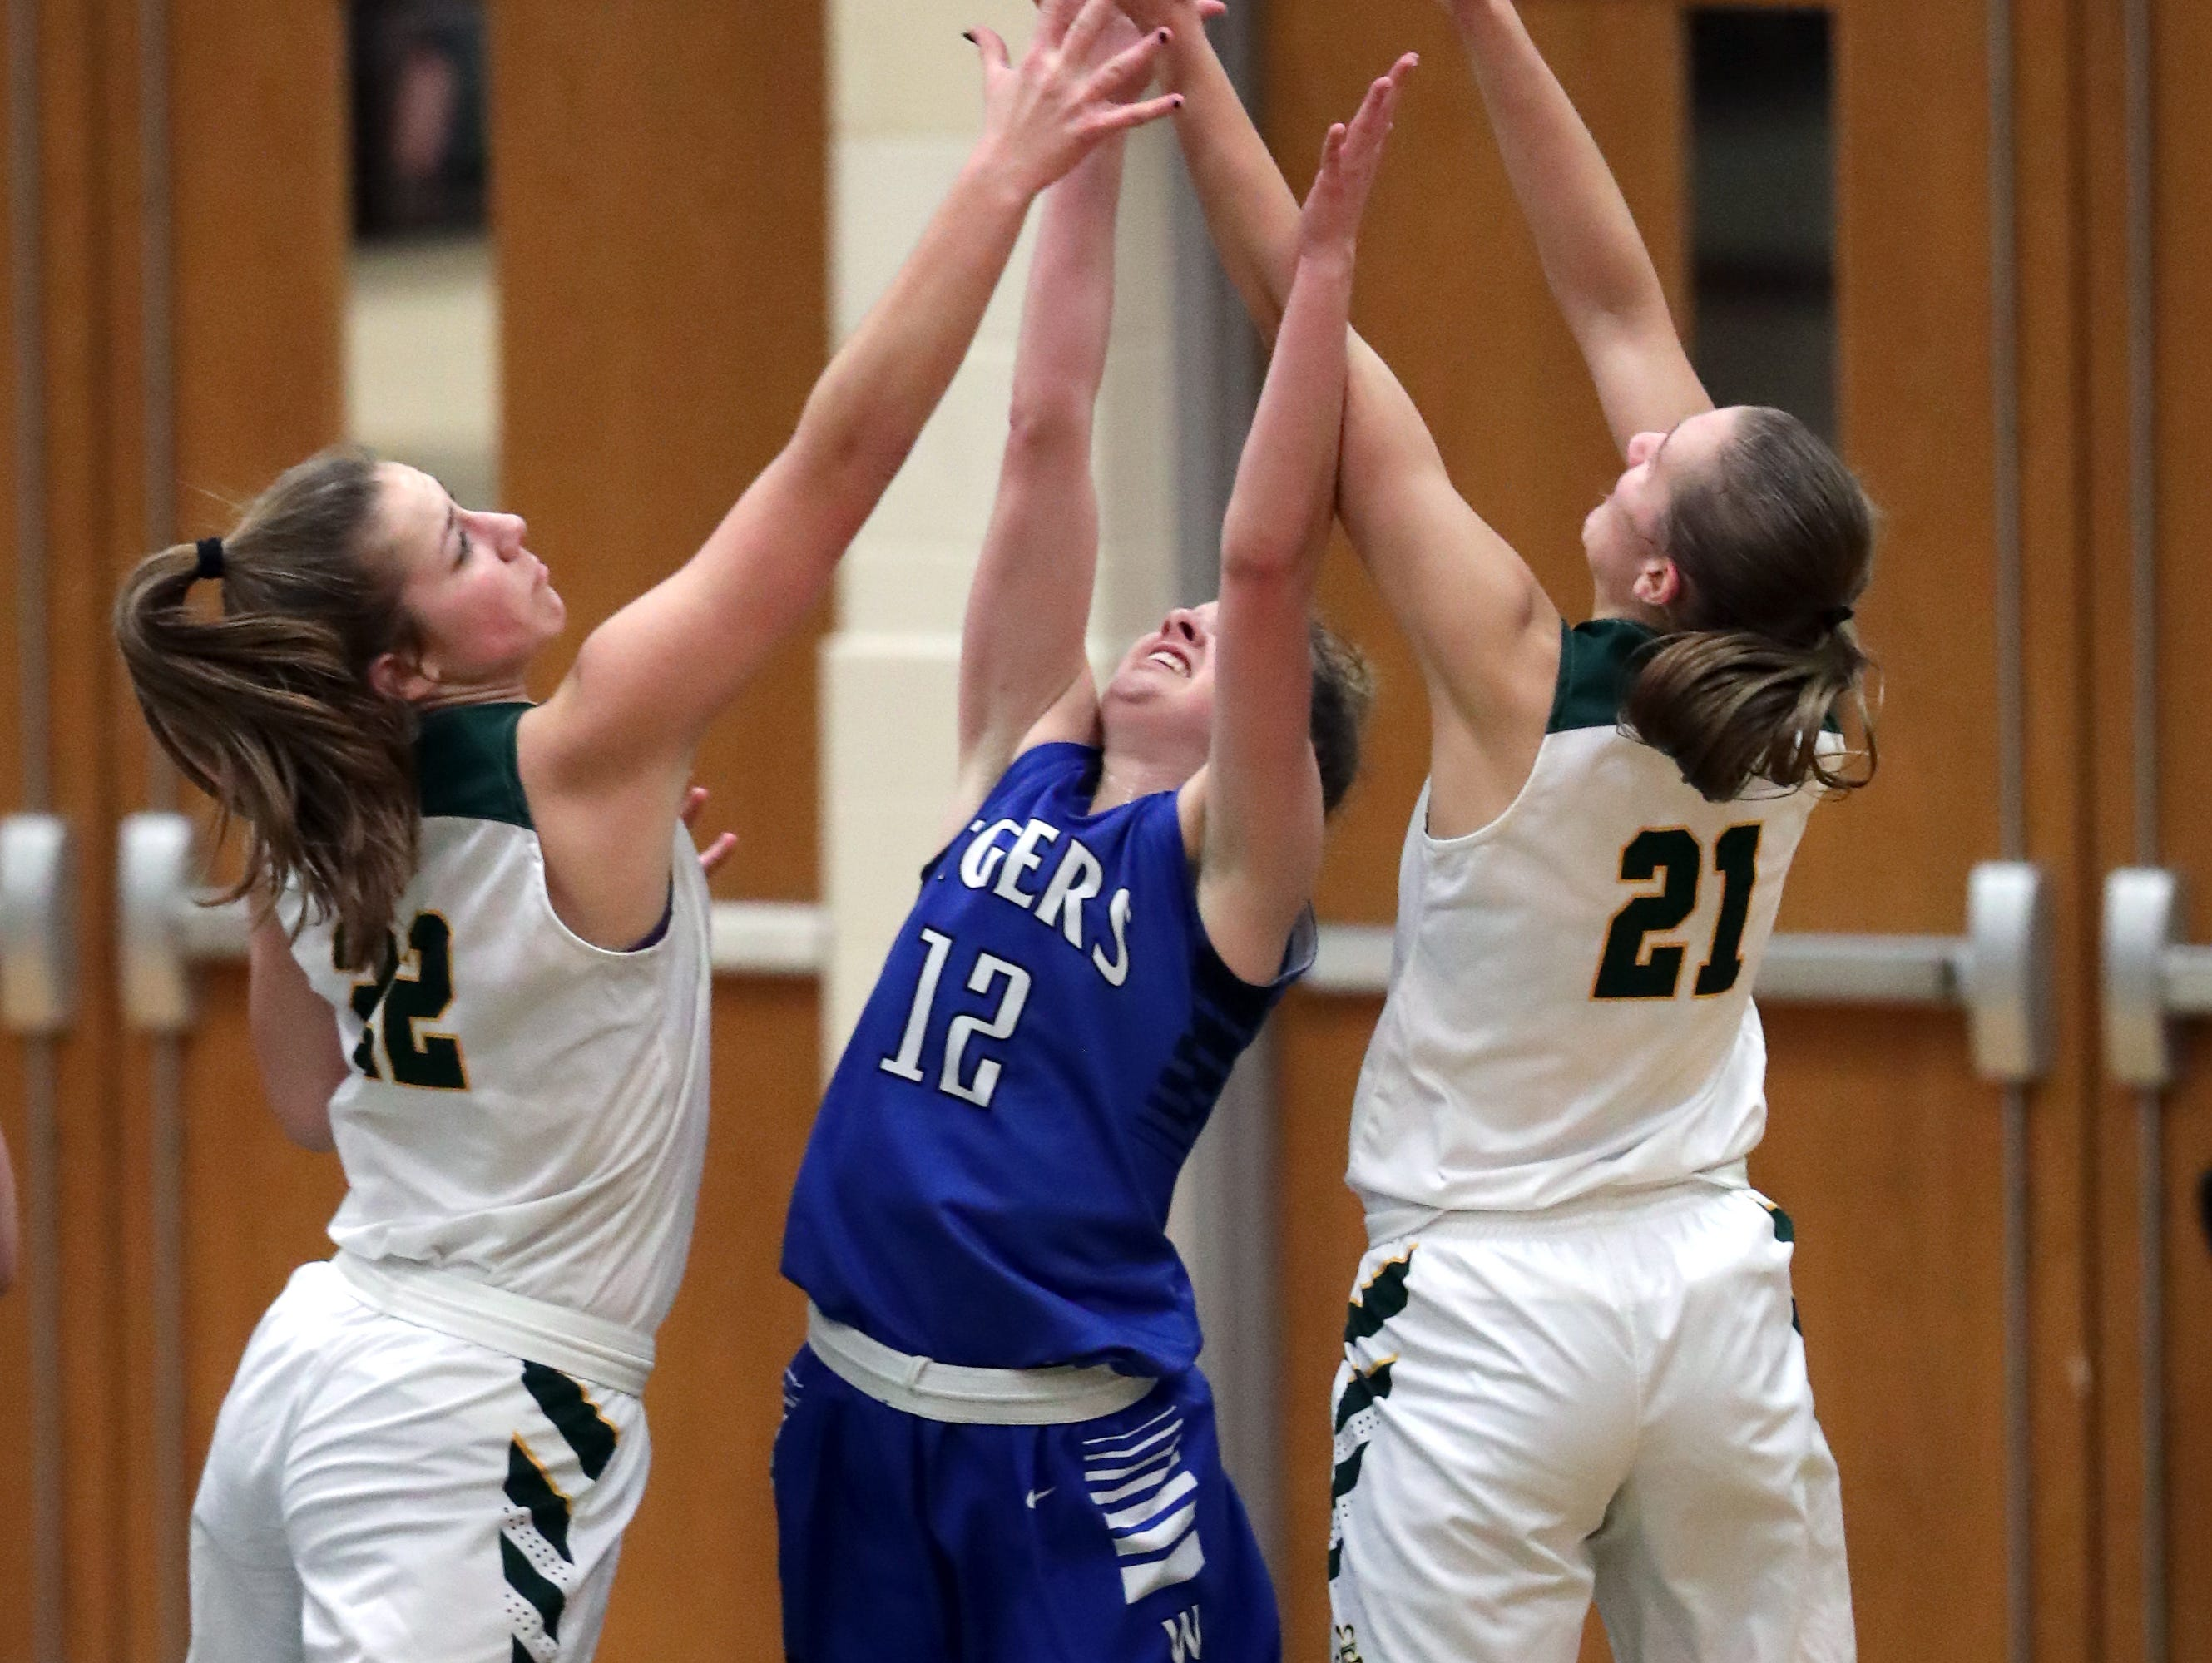 Freedom High School's #22 Taylor Haase and #21 Callie Genke against Wrightstown High School's #12 Meghan Riha during their North Eastern Conference girls basketball game on Thursday, January 3, 2019, in Freedom, Wis. Freedom defeated Wrightstown 54 to 34.Wm. Glasheen/USA TODAY NETWORK-Wisconsin.